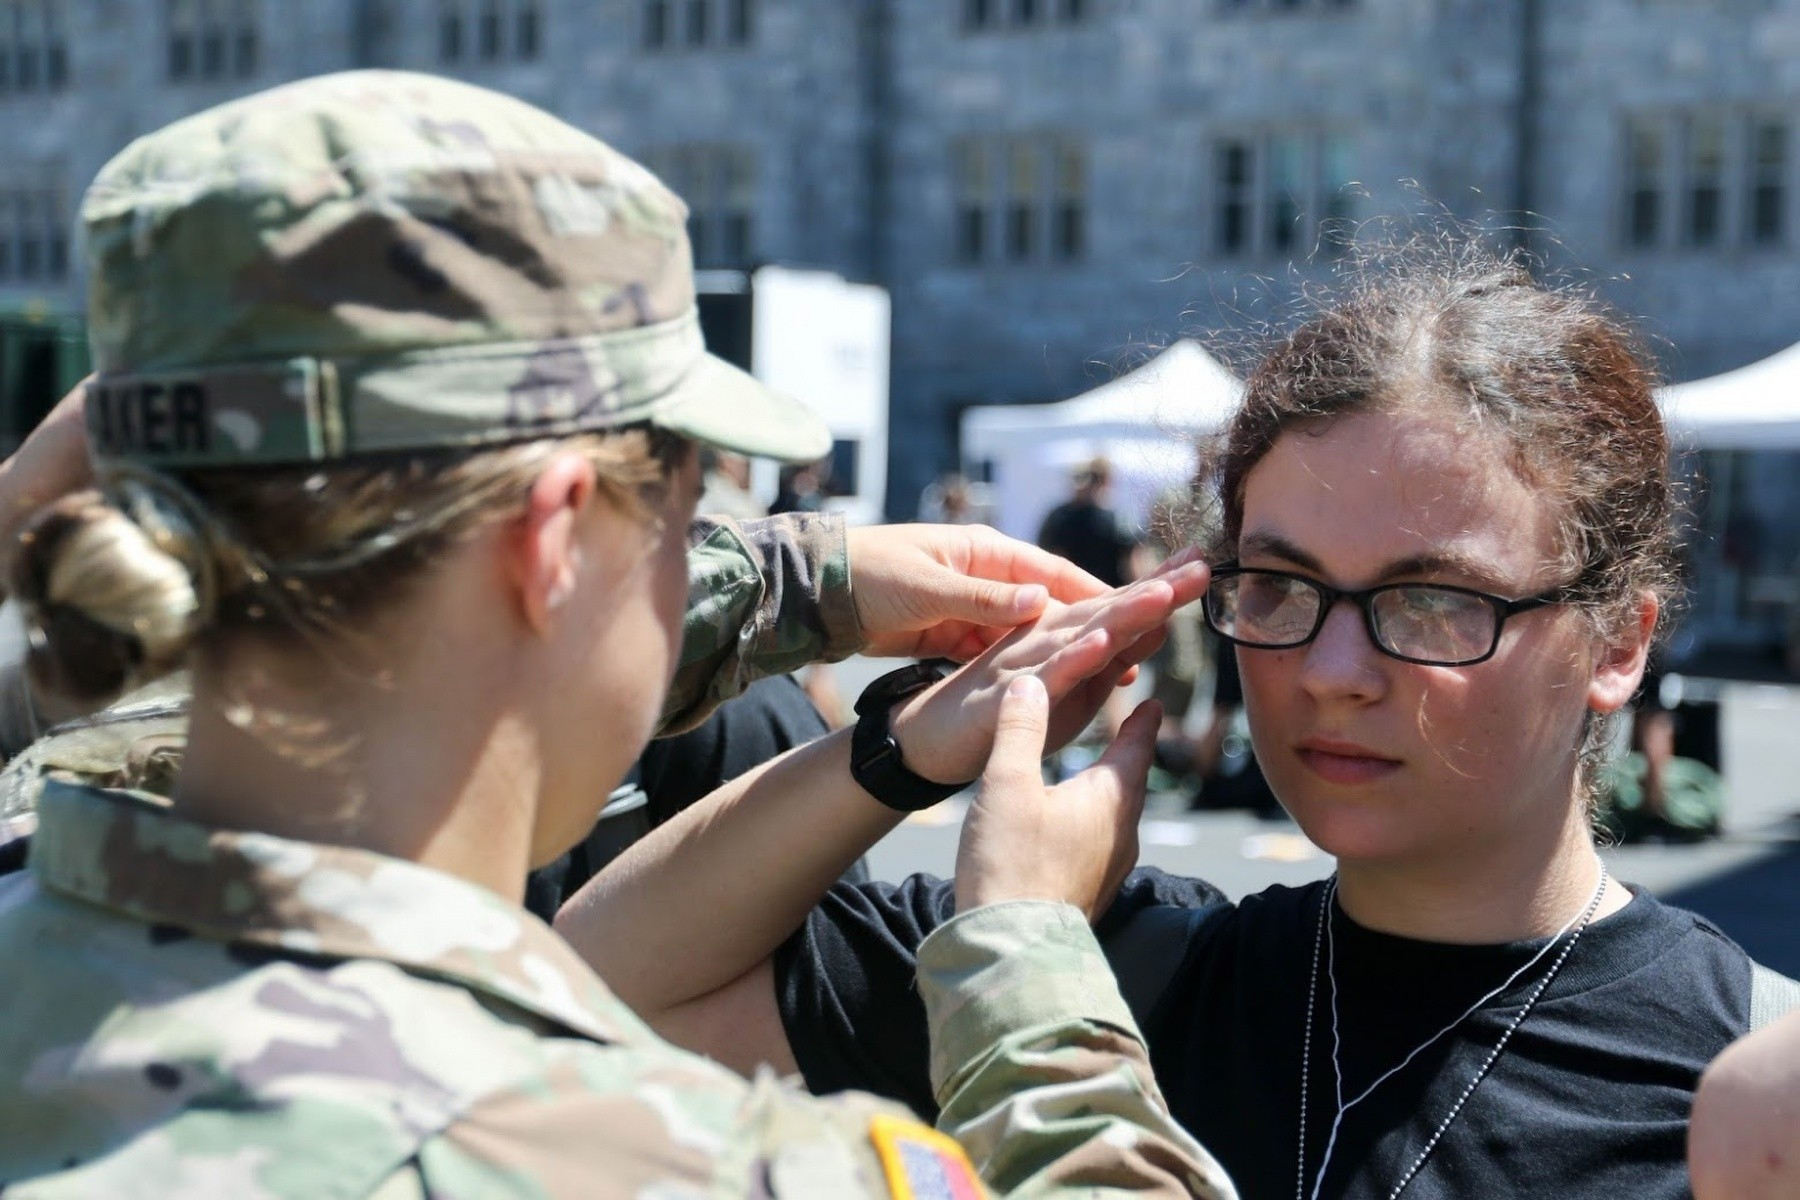 Reception Day marks beginning of journey for USMA Class of 2023